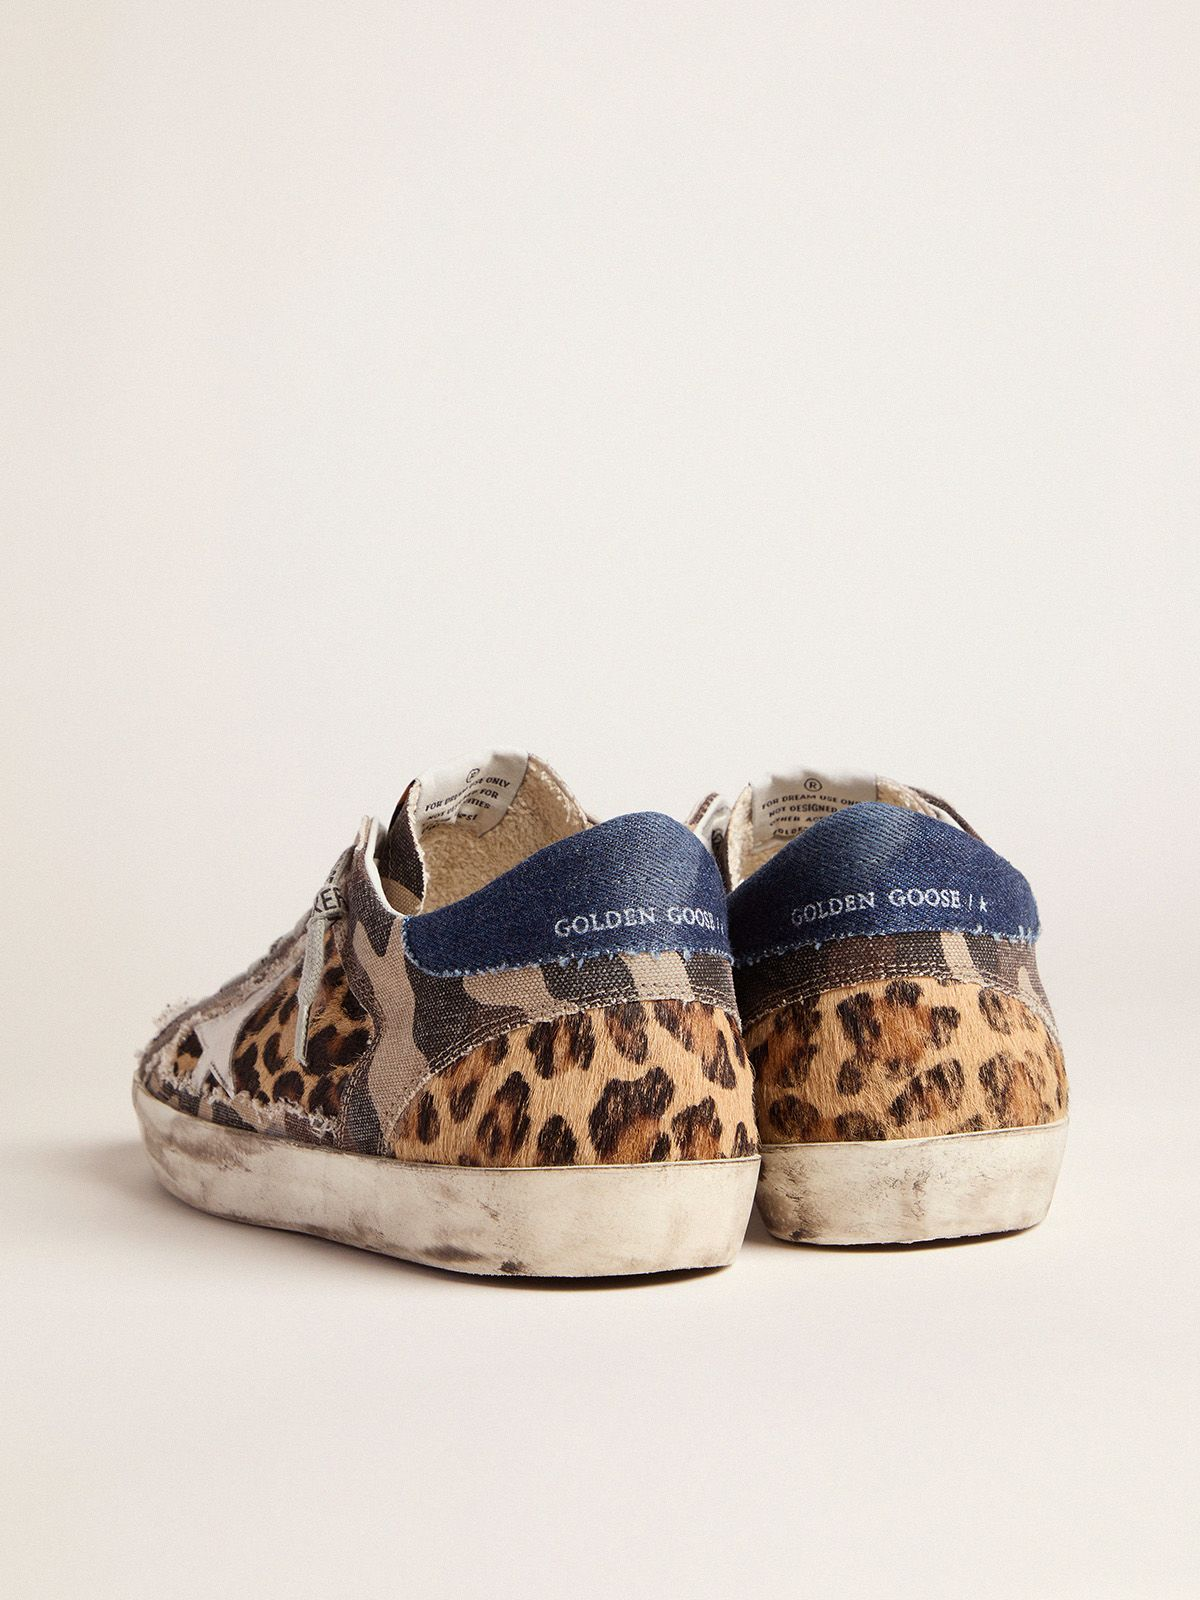 Golden Goose - Men's leopard-print and camouflage patchwork Super-Star sneakers in